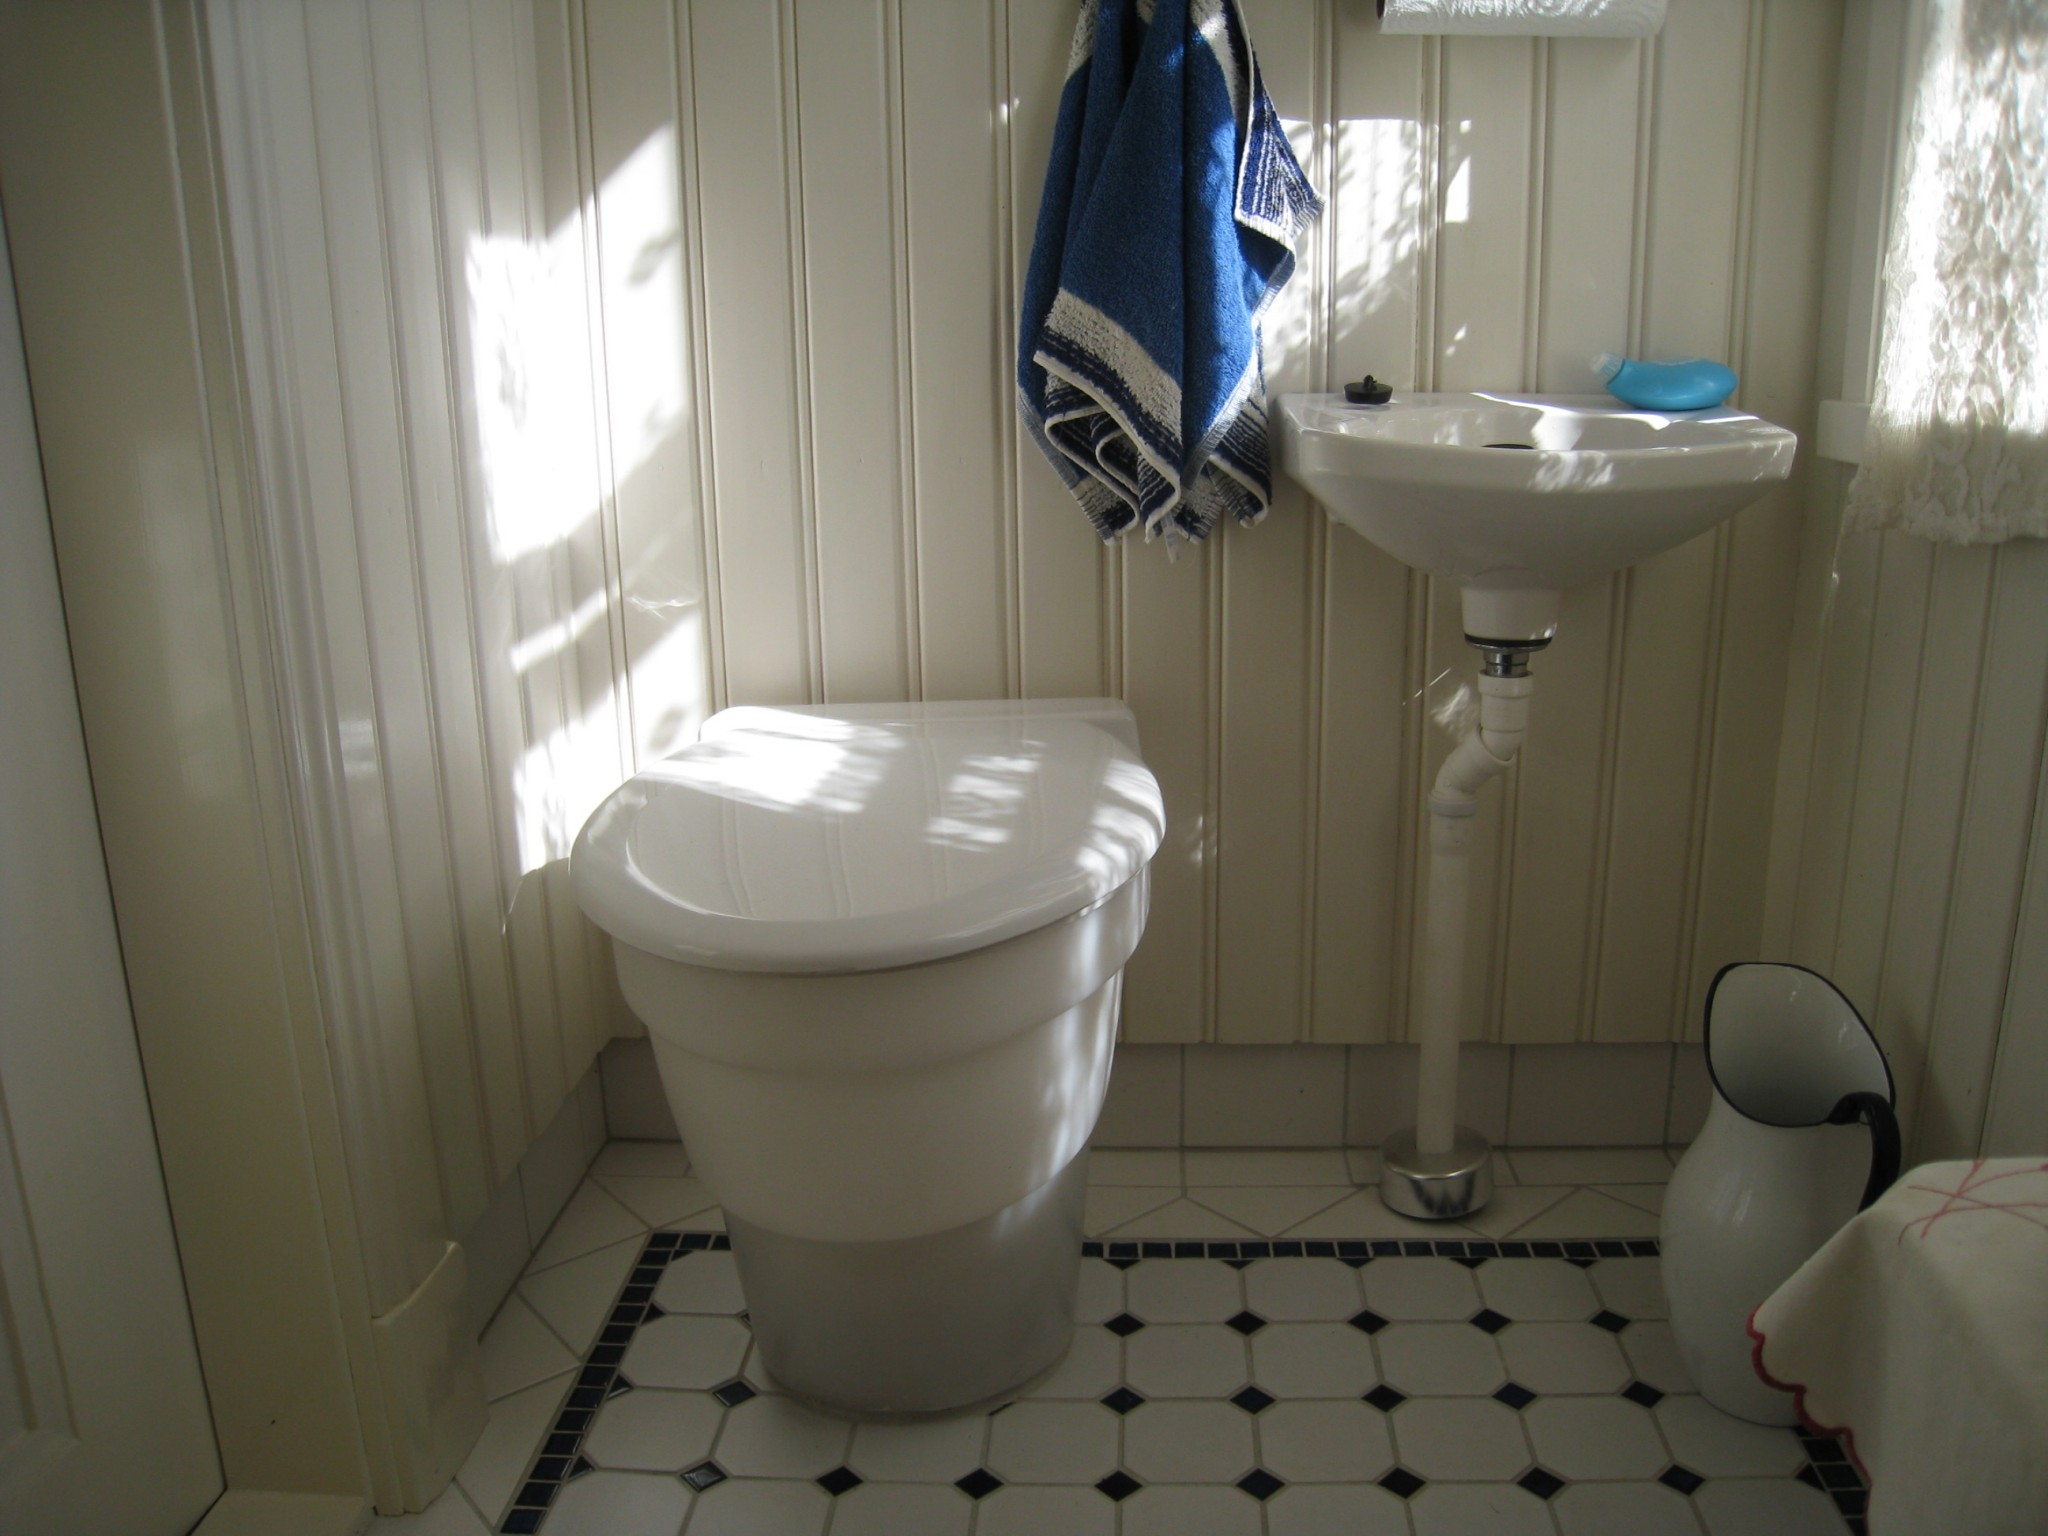 Elegant Old Fishermanu0027s House In The Archipelago Is Enlarged With Indoor Composting  Toilet In The House